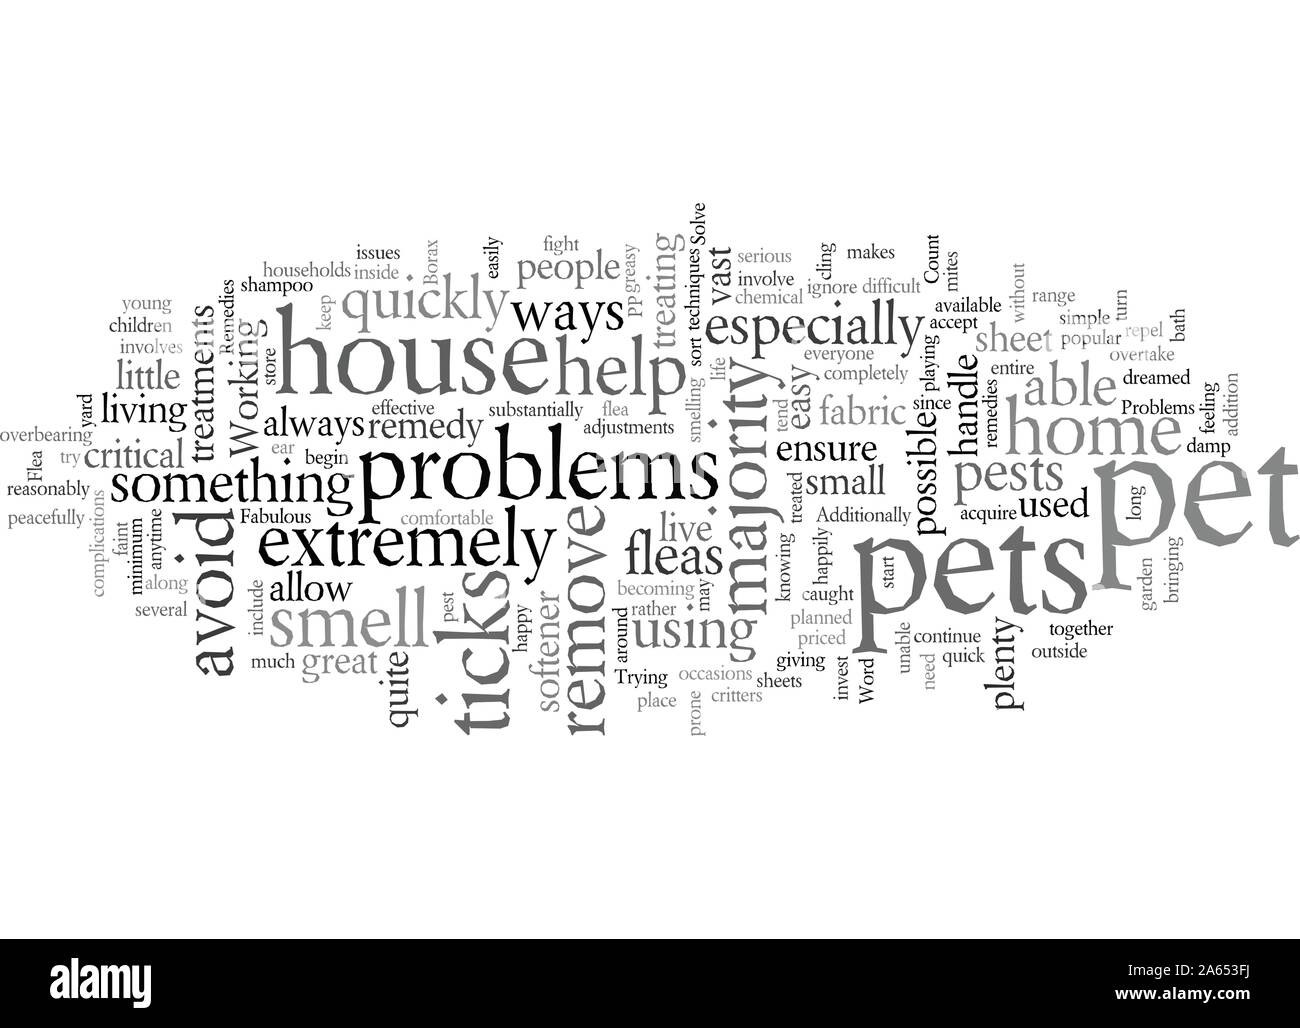 Fabulous Pet Remedies to Solve Your Problems Stock Vector